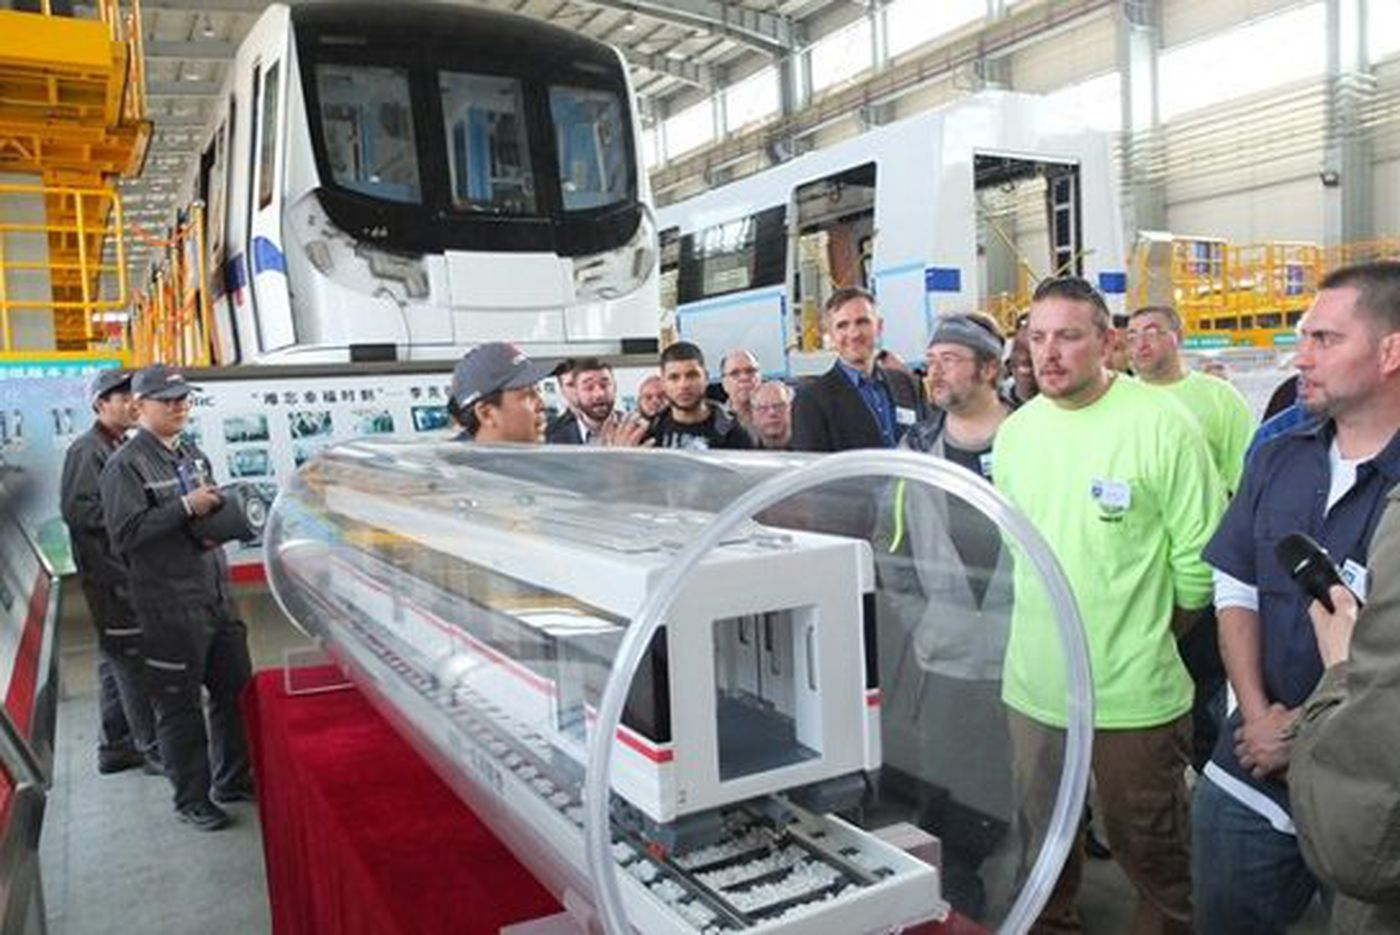 Philly railcar maker Hyundai Rotem gives up and leaves town